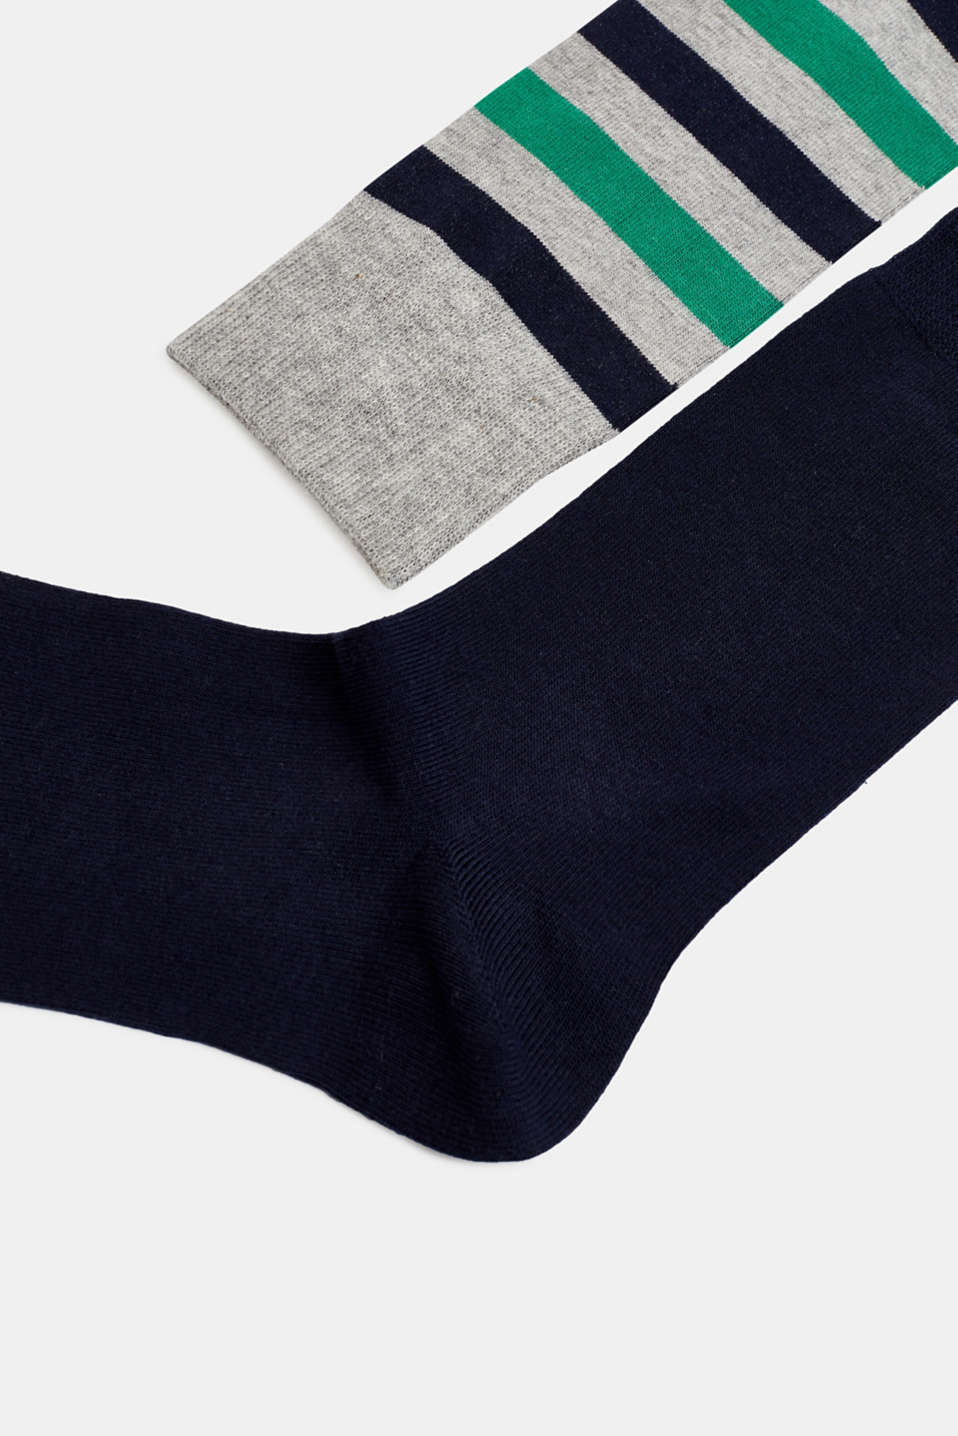 In a double pack: plain and striped socks, LIGHT GREY, detail image number 1